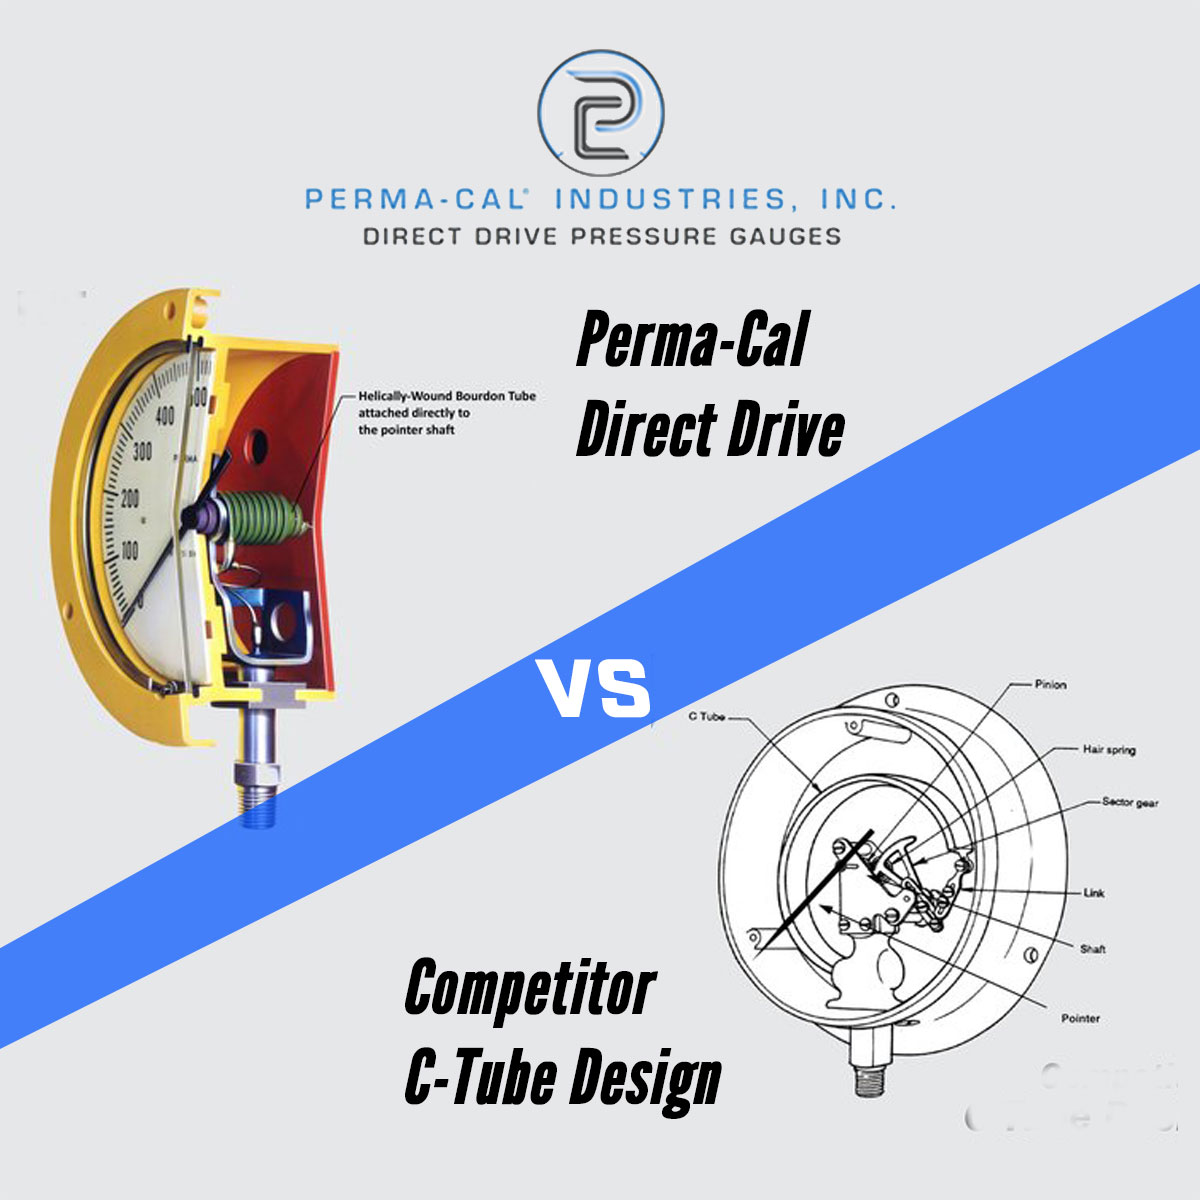 Perma-Cal Direct Drive vs. C-Tube